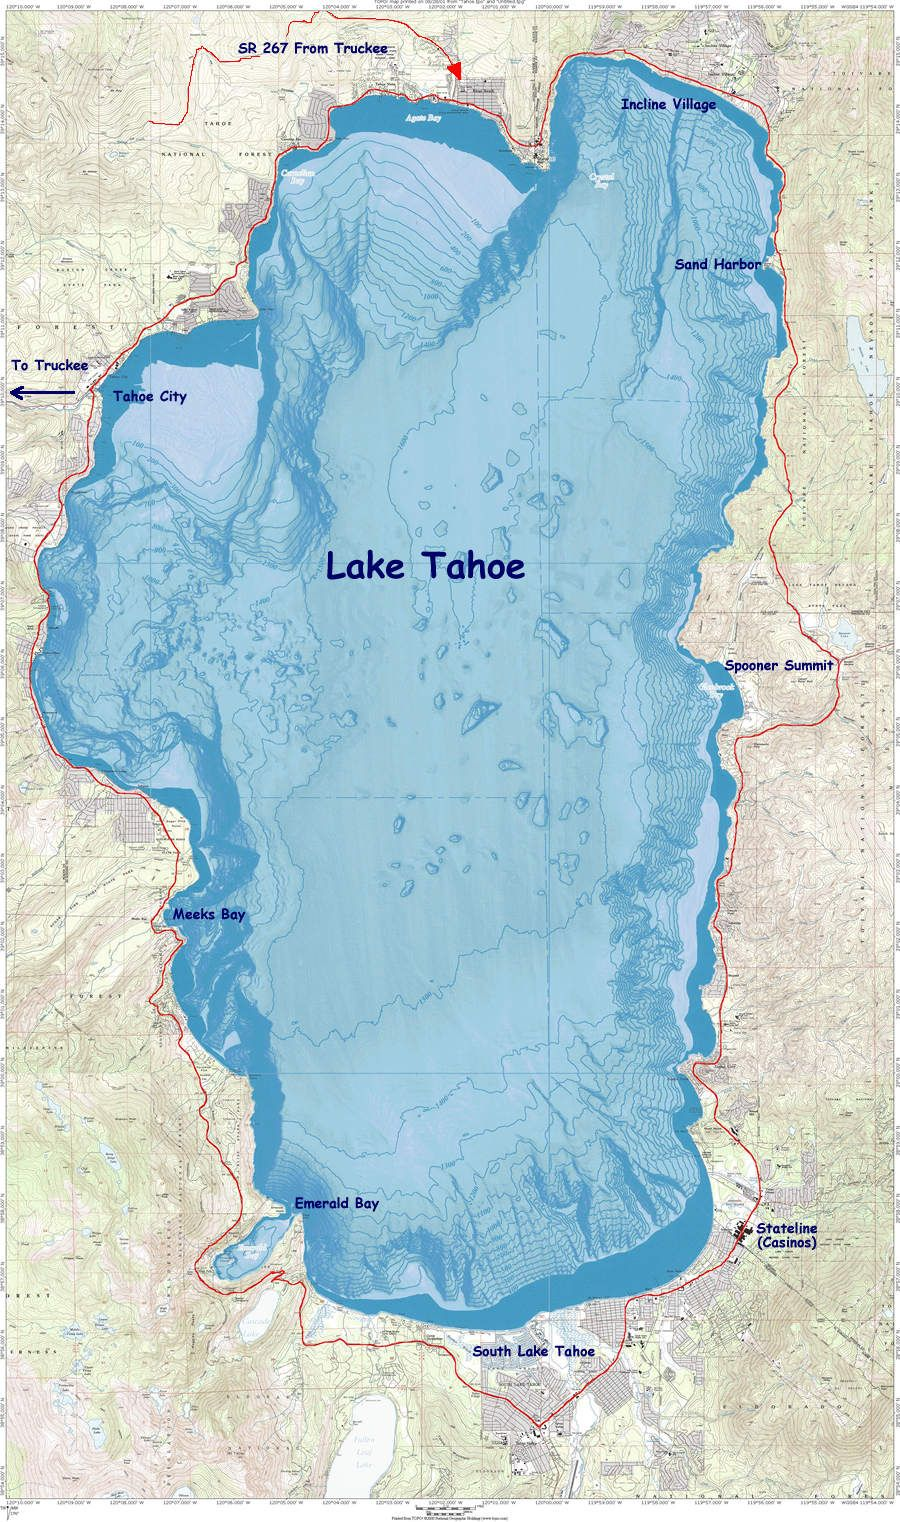 underwater maps of lakes Lake Tahoe Map Cycling Route In Red Encircling An Underwater underwater maps of lakes